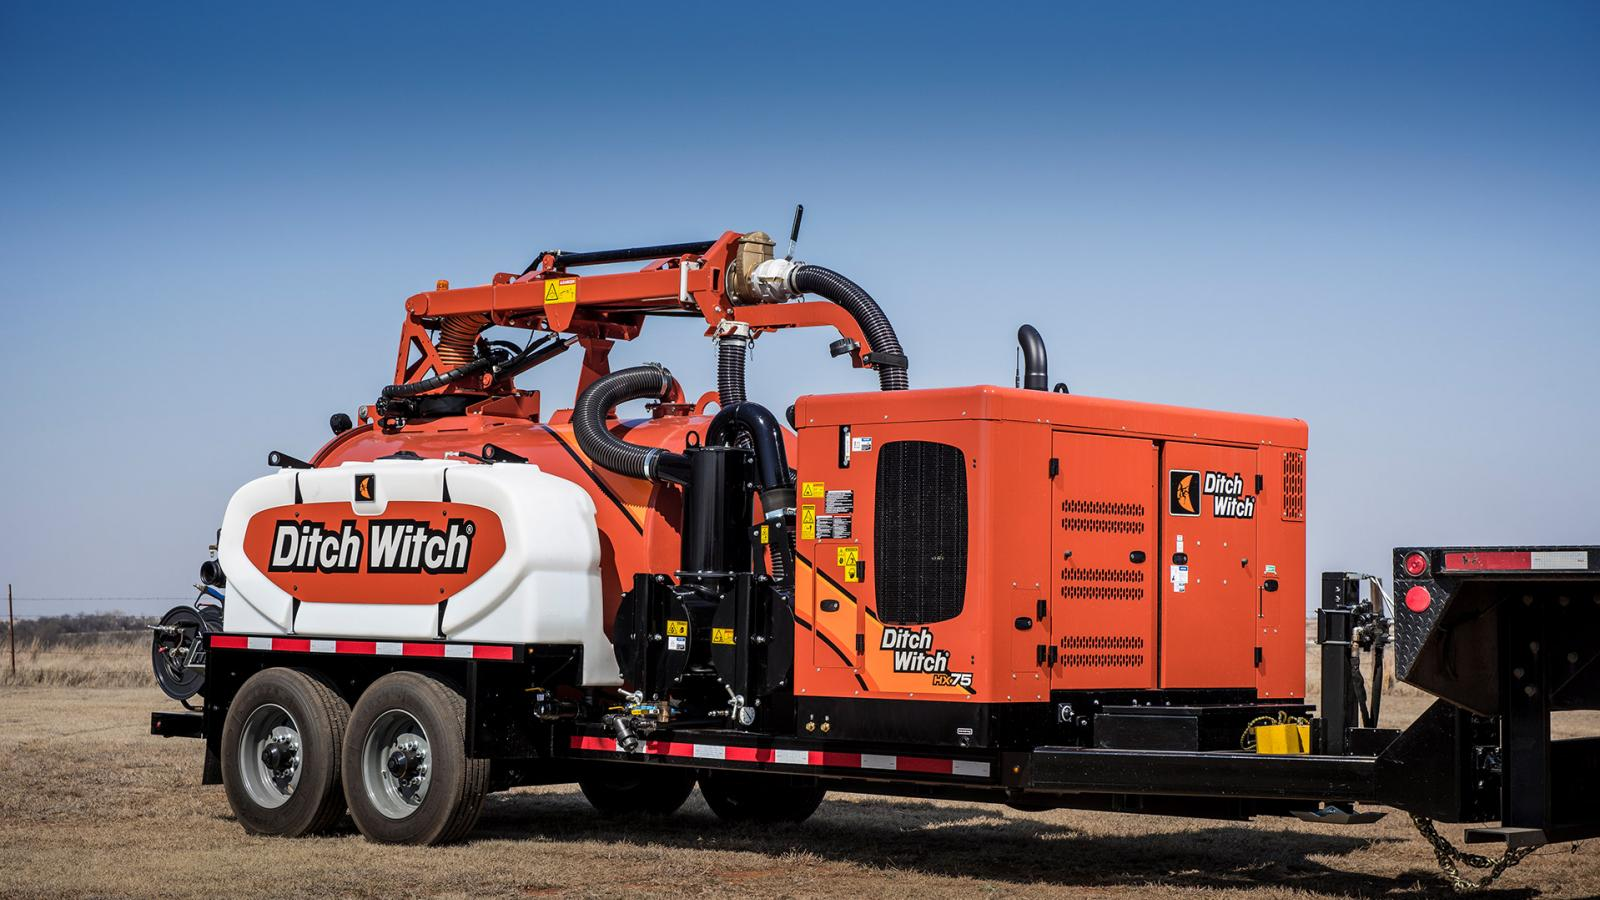 Ditch Witch HX75 Vacuum Excavator